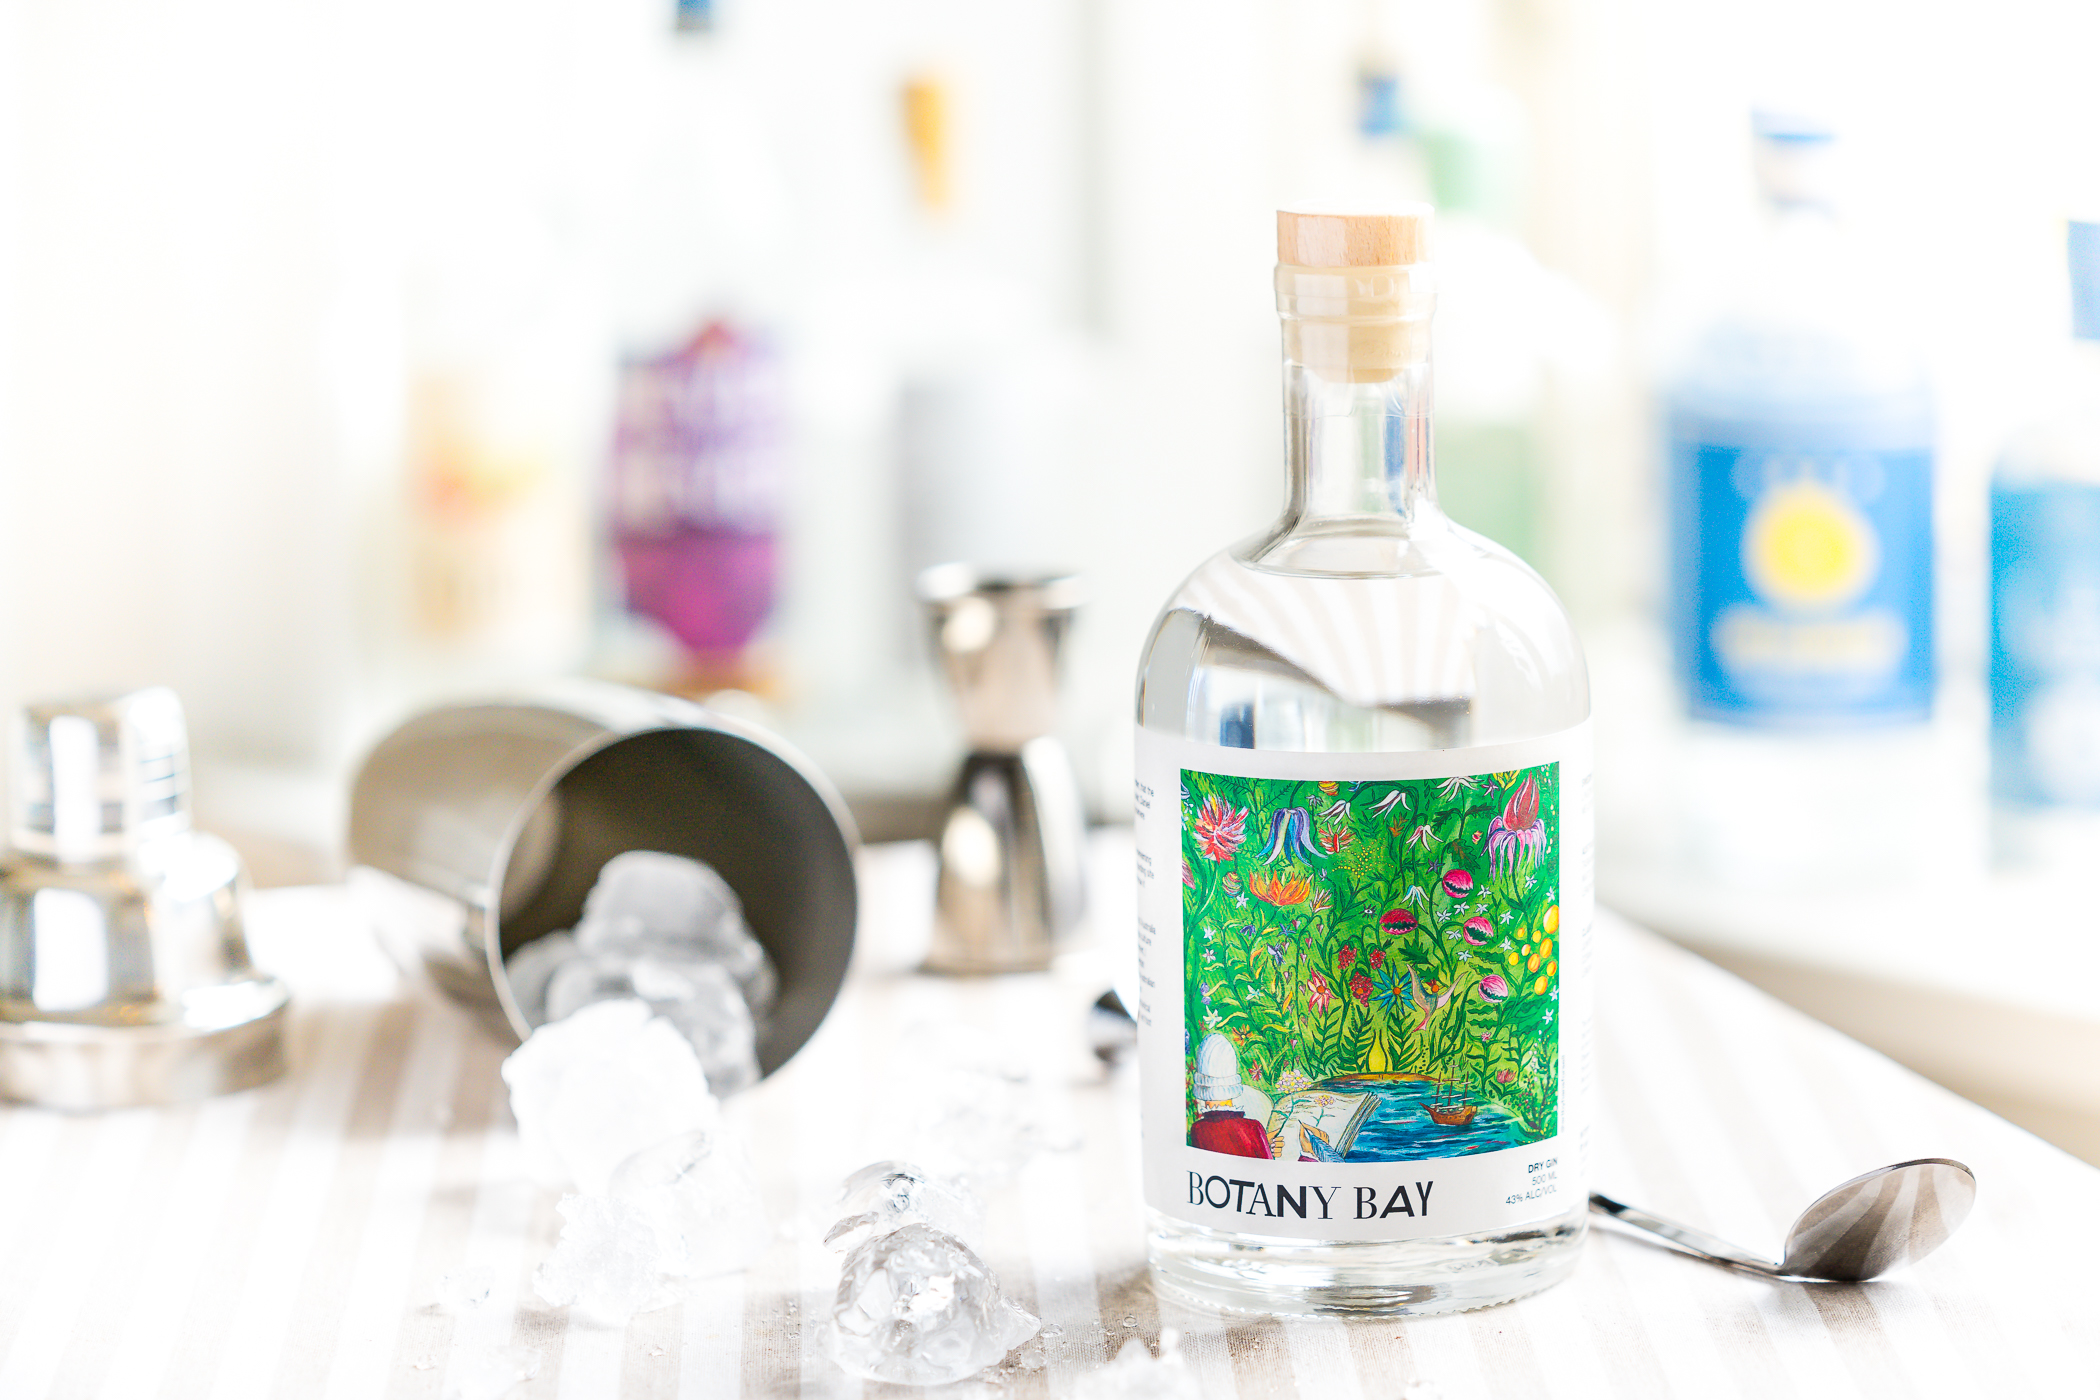 Hernö x Four Pillars Botany Bay Gin. Photo by Michael Sperling.